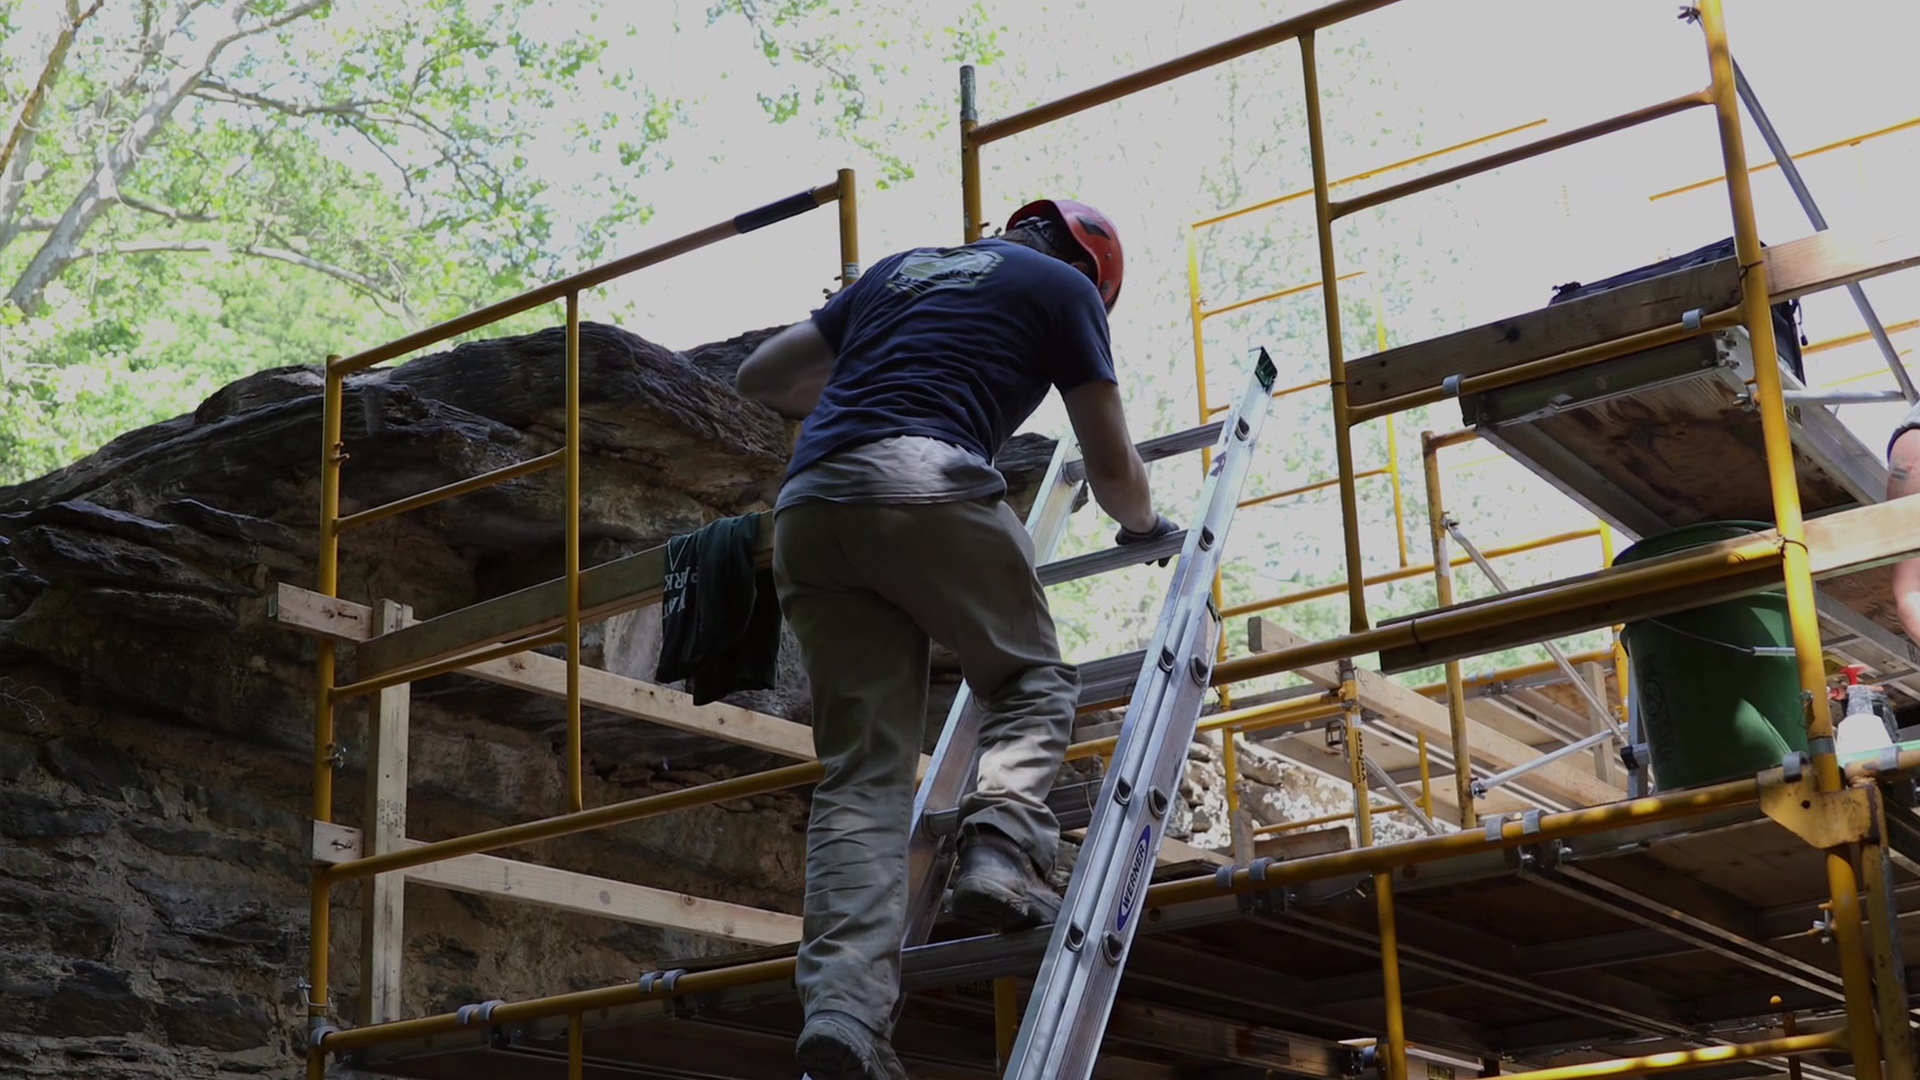 An NPS employee skilled in the traditional trades work at the Pulp Mill Ruins in Harpers Ferry, WV